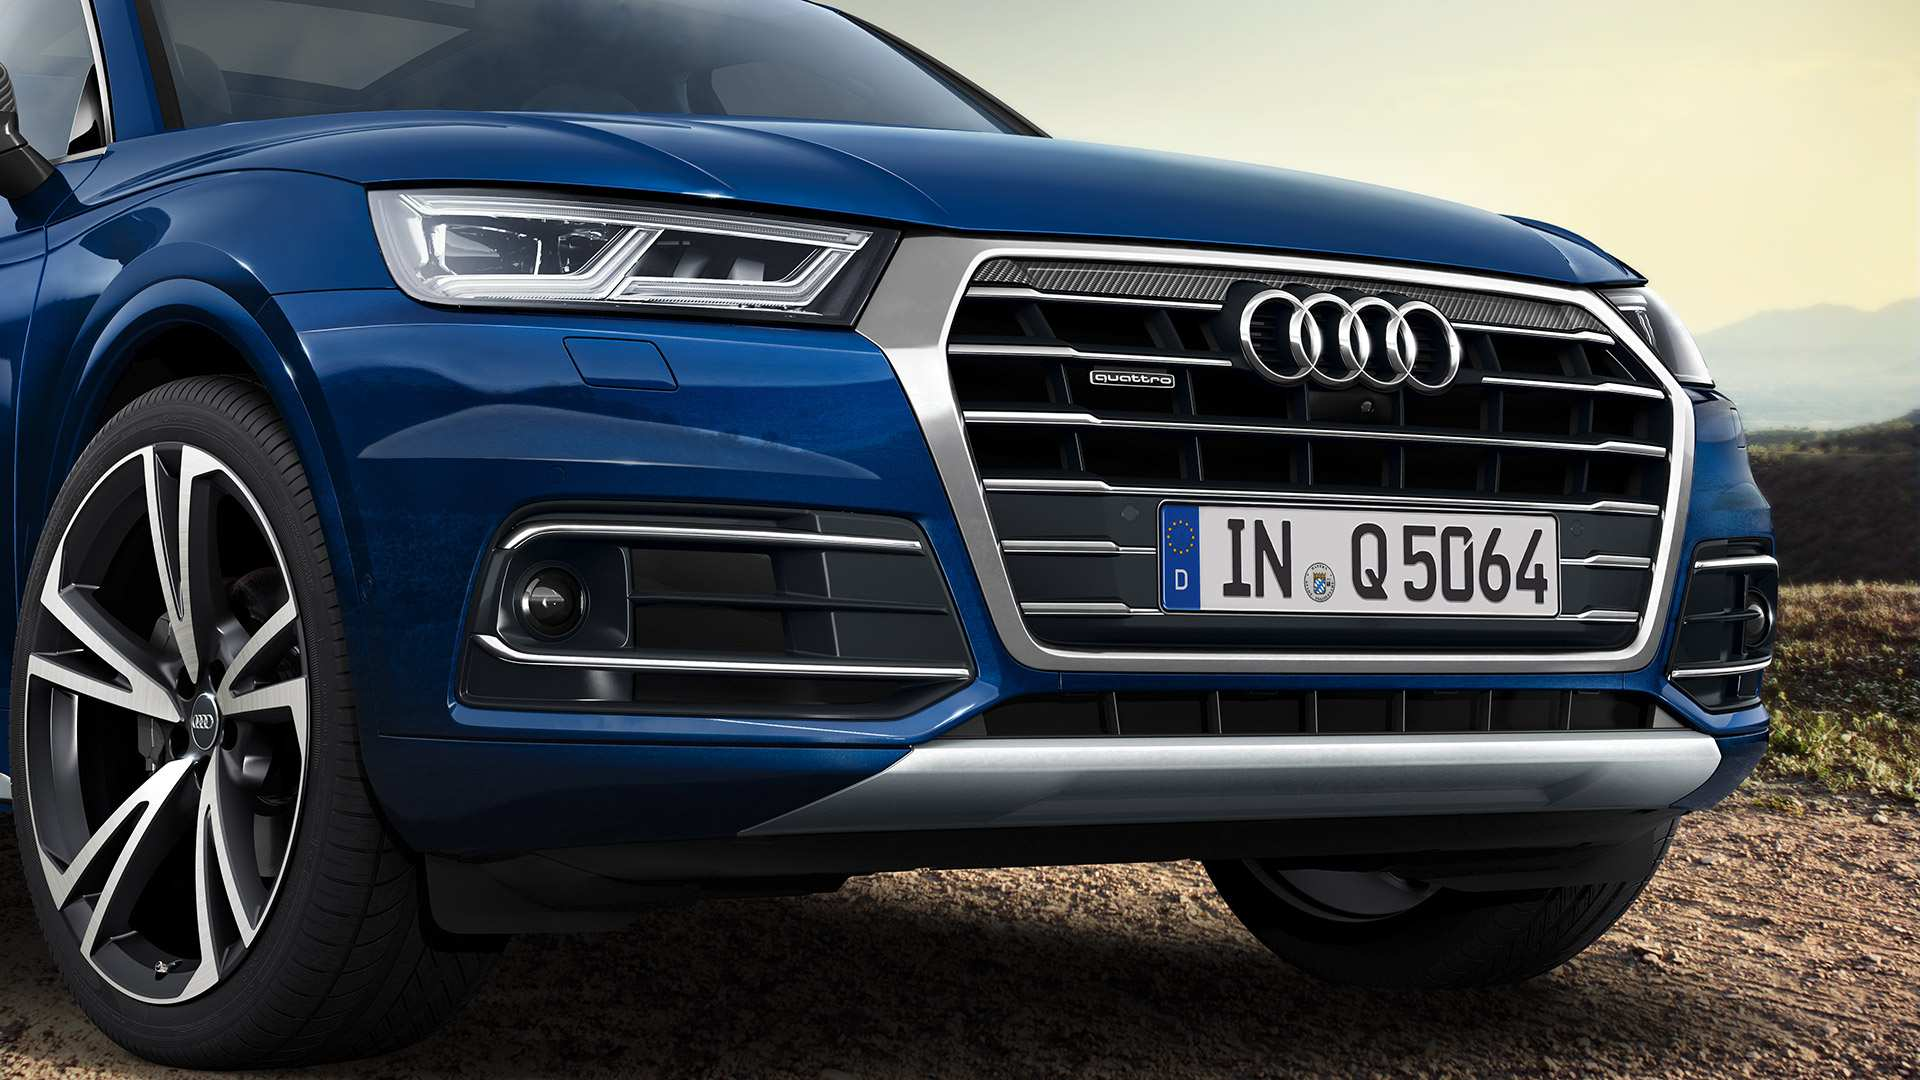 94 The Best Audi X5 2020 Price Design And Review